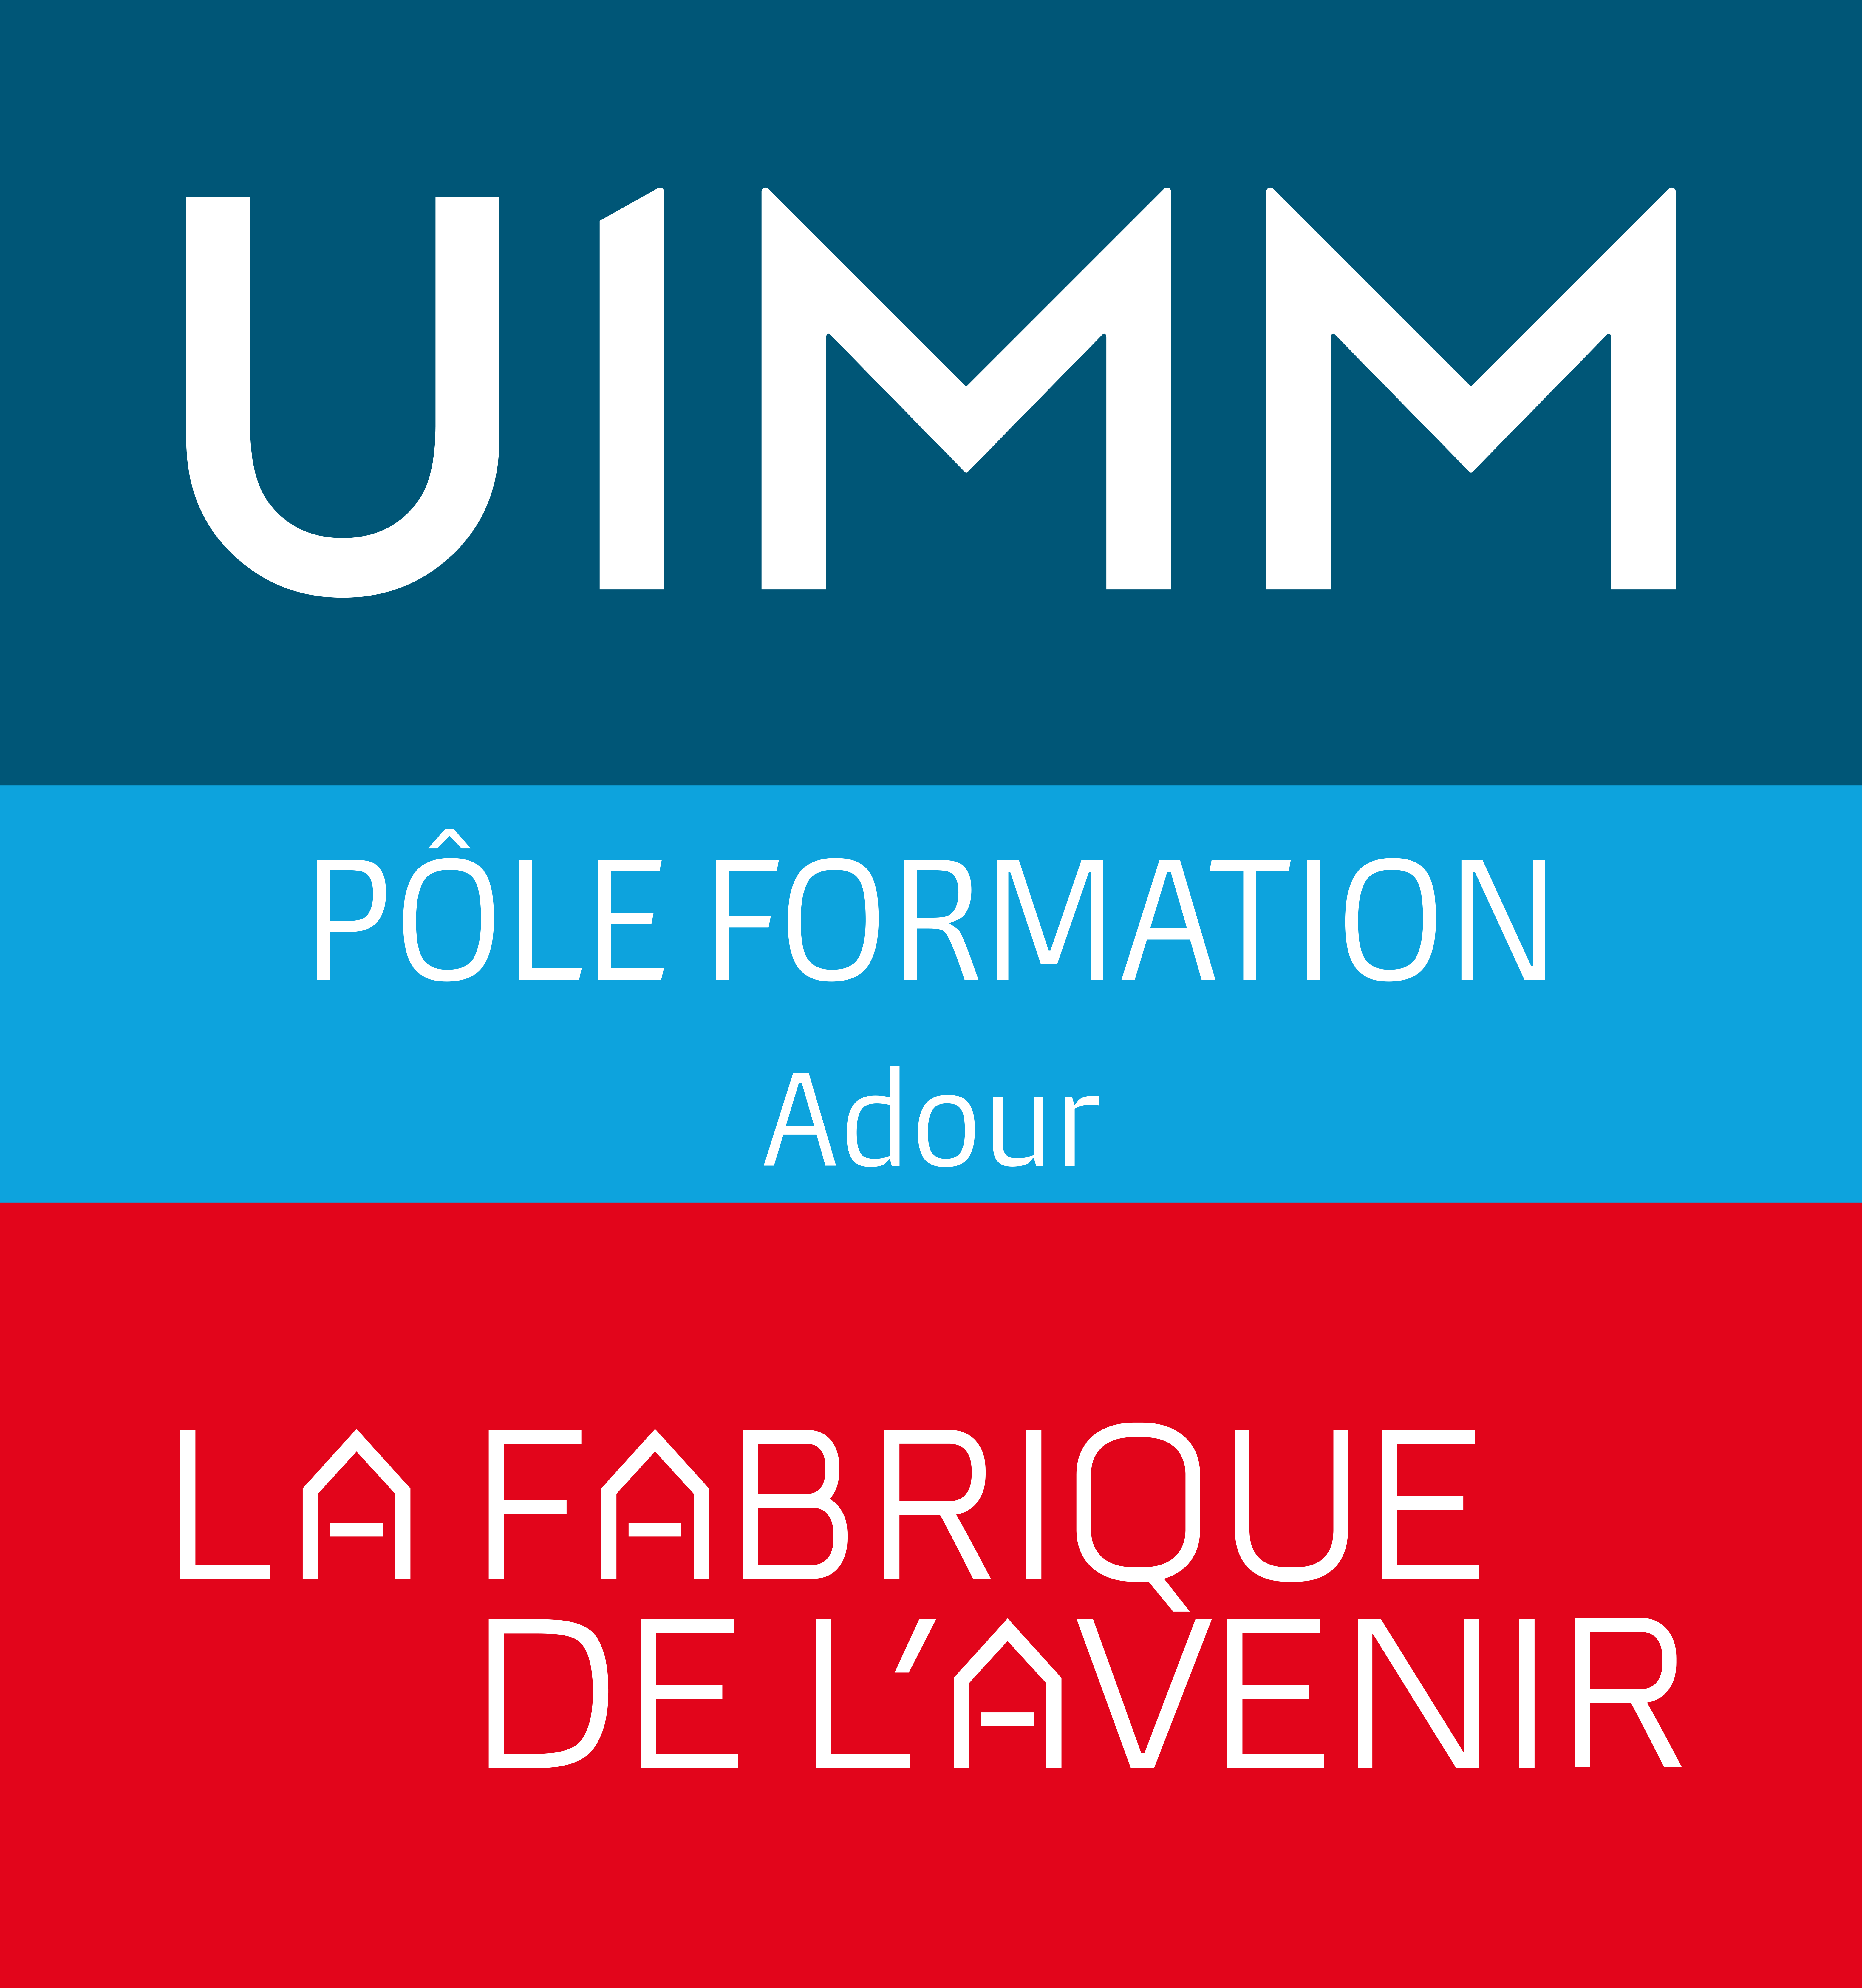 Logo Pole Formation Adour - UIMM